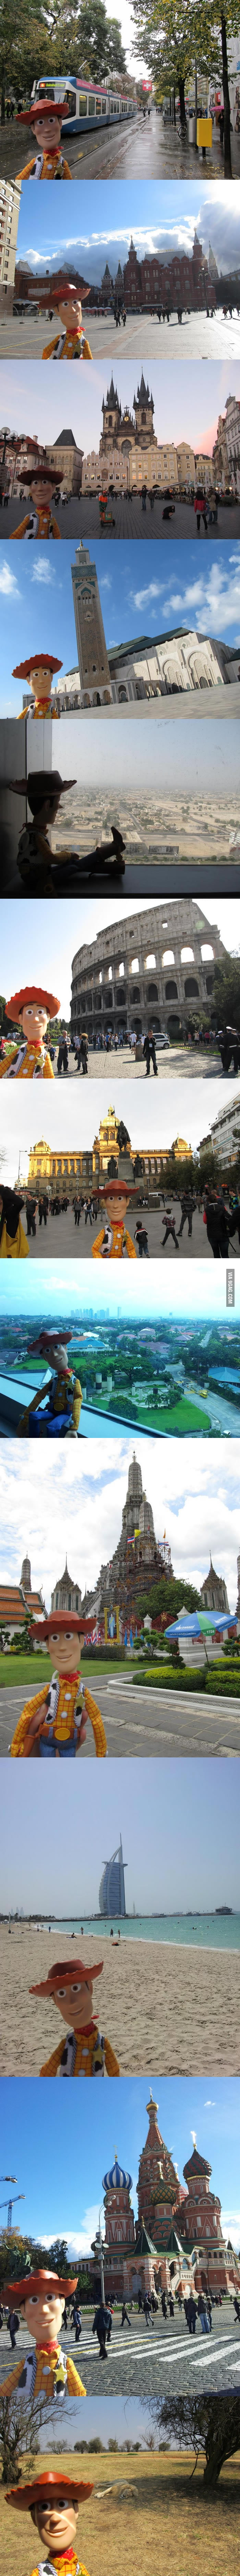 My friend traveled a lot and she's also a huge Toy Story fan